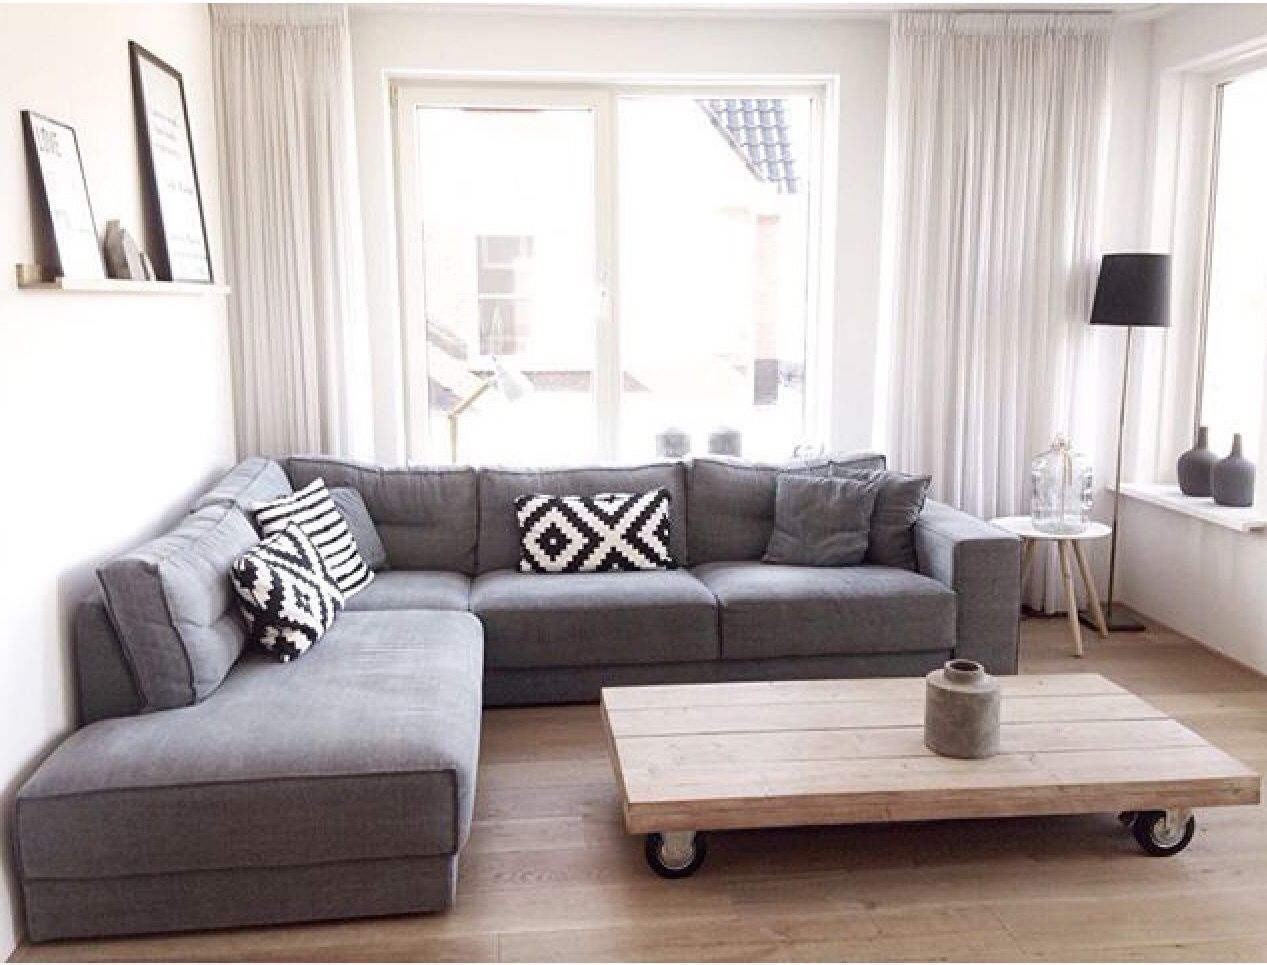 Ikea Living Room Inspiration Pin By Dimitra Maroulis On Furniture In 2019 Ikea Living Room